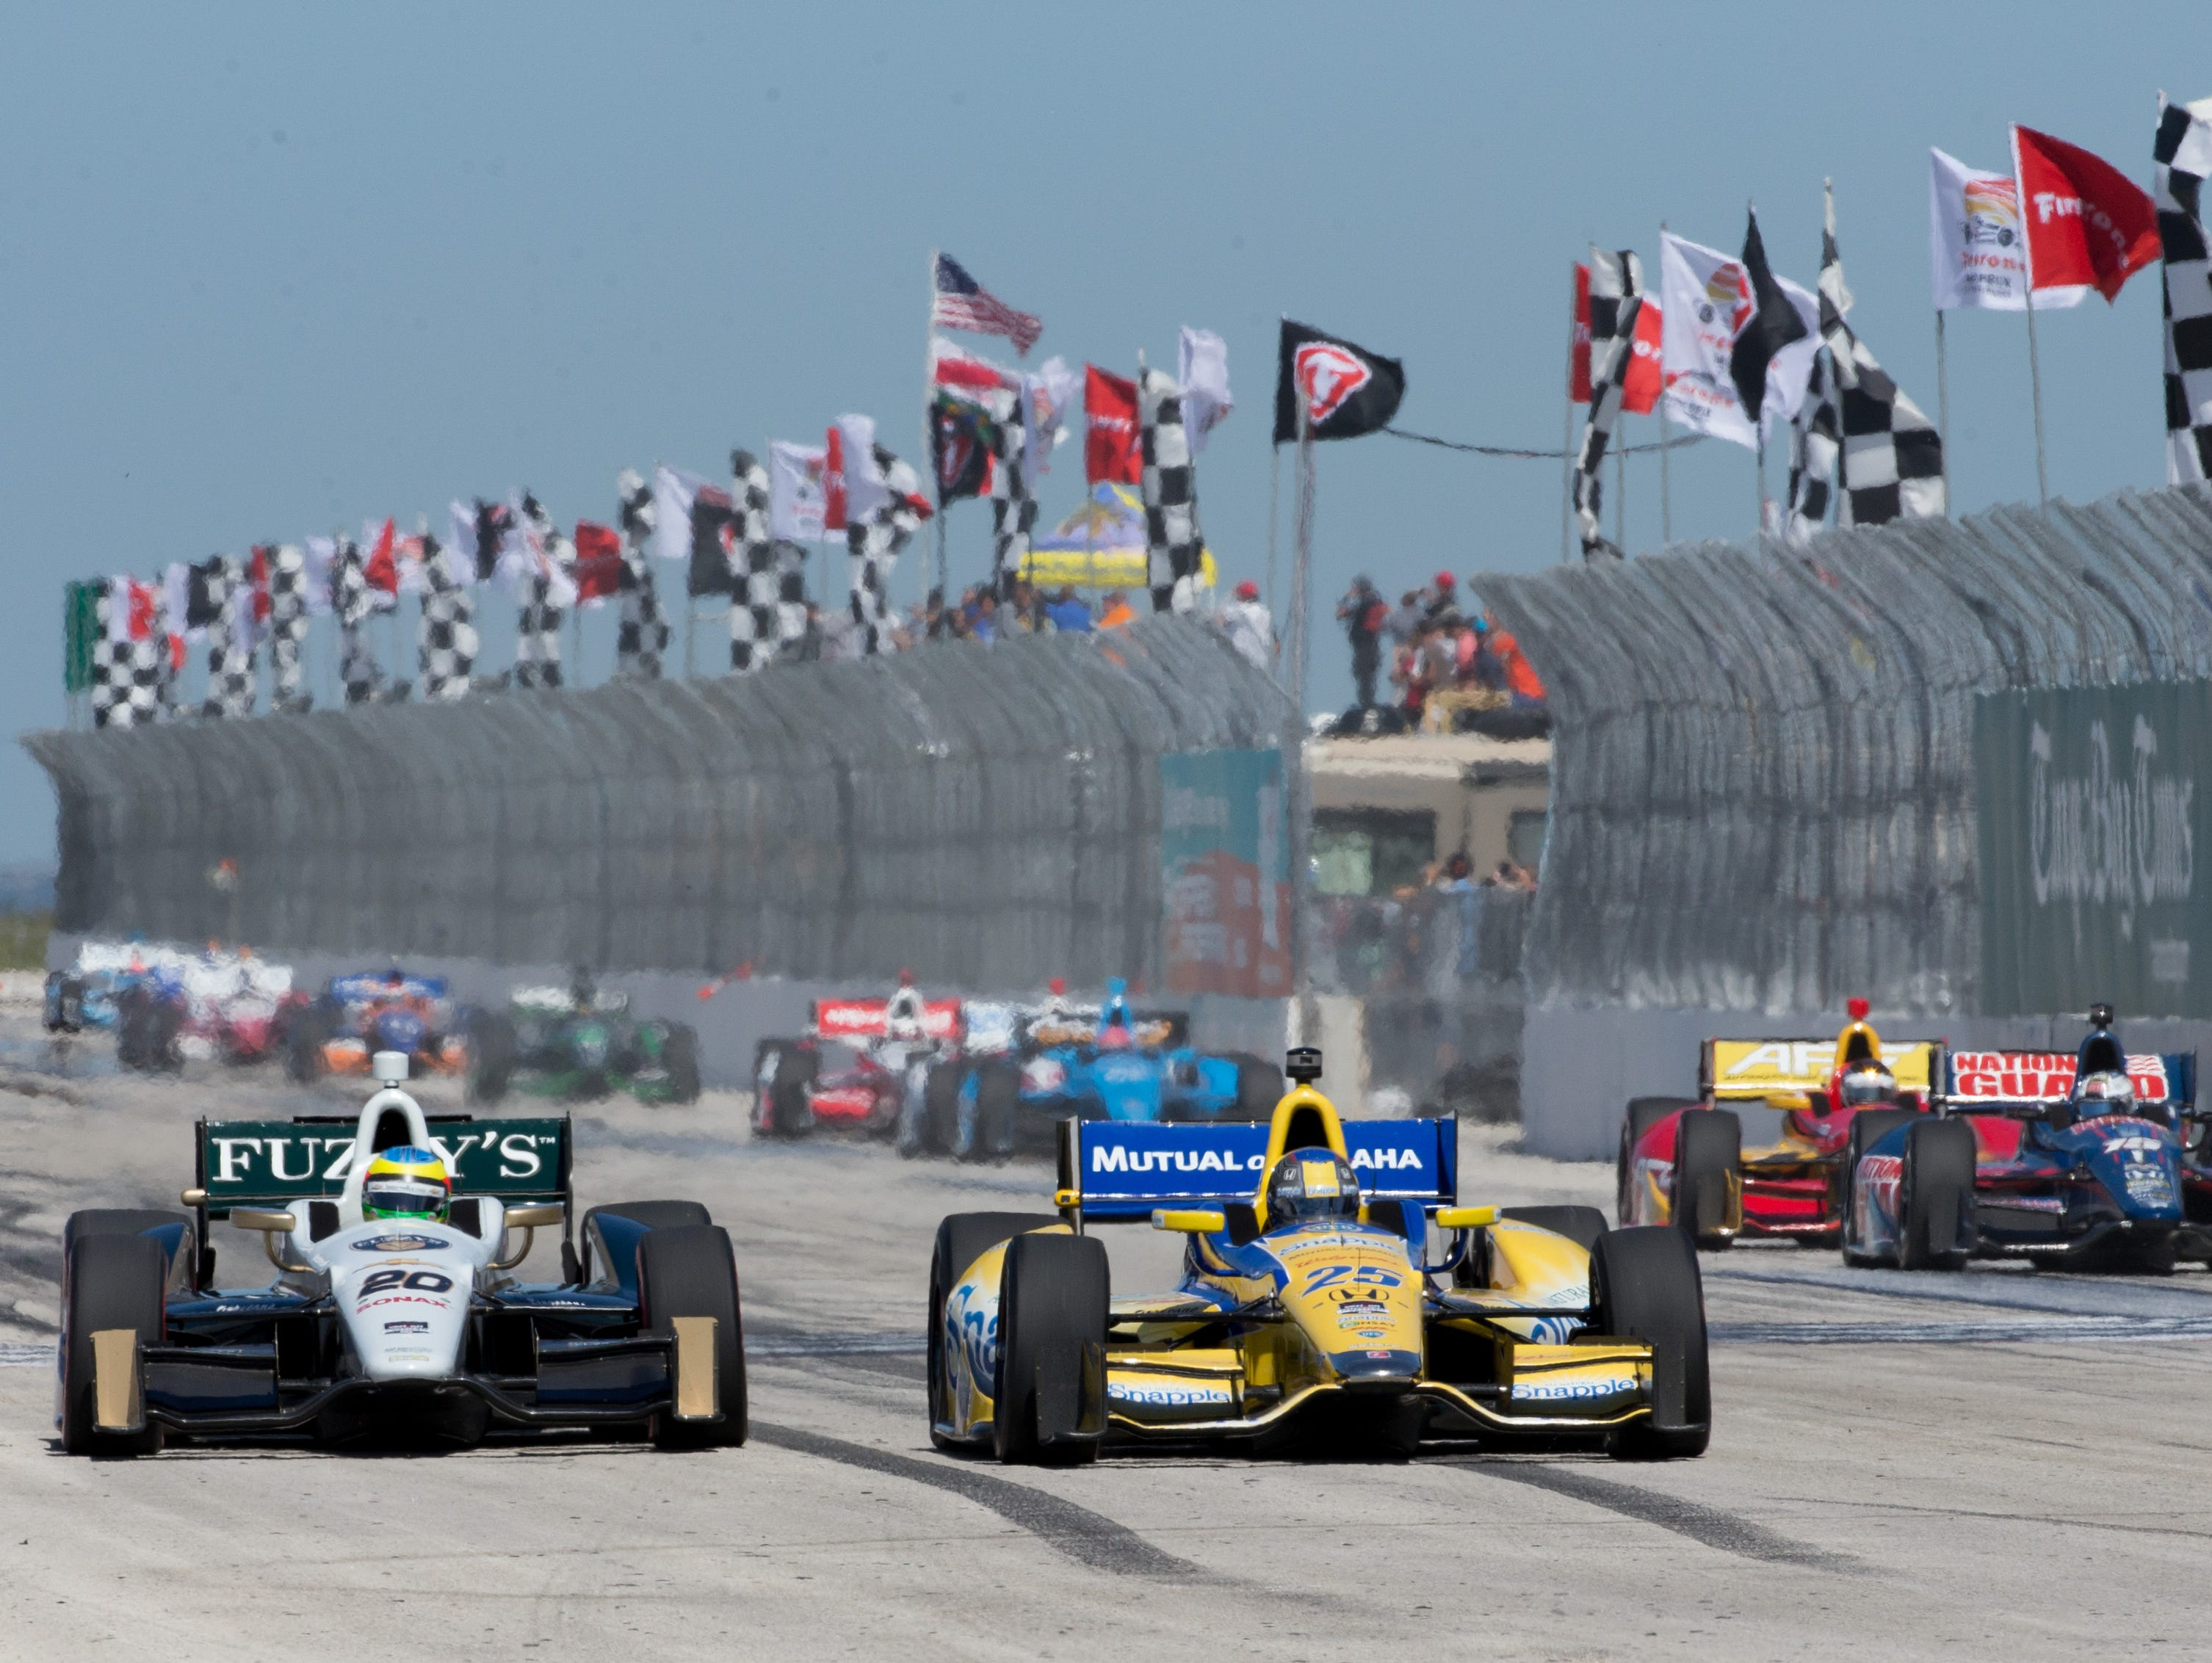 IndyCar's annual race in St. Petersburg is a fan (and reporter) favorite